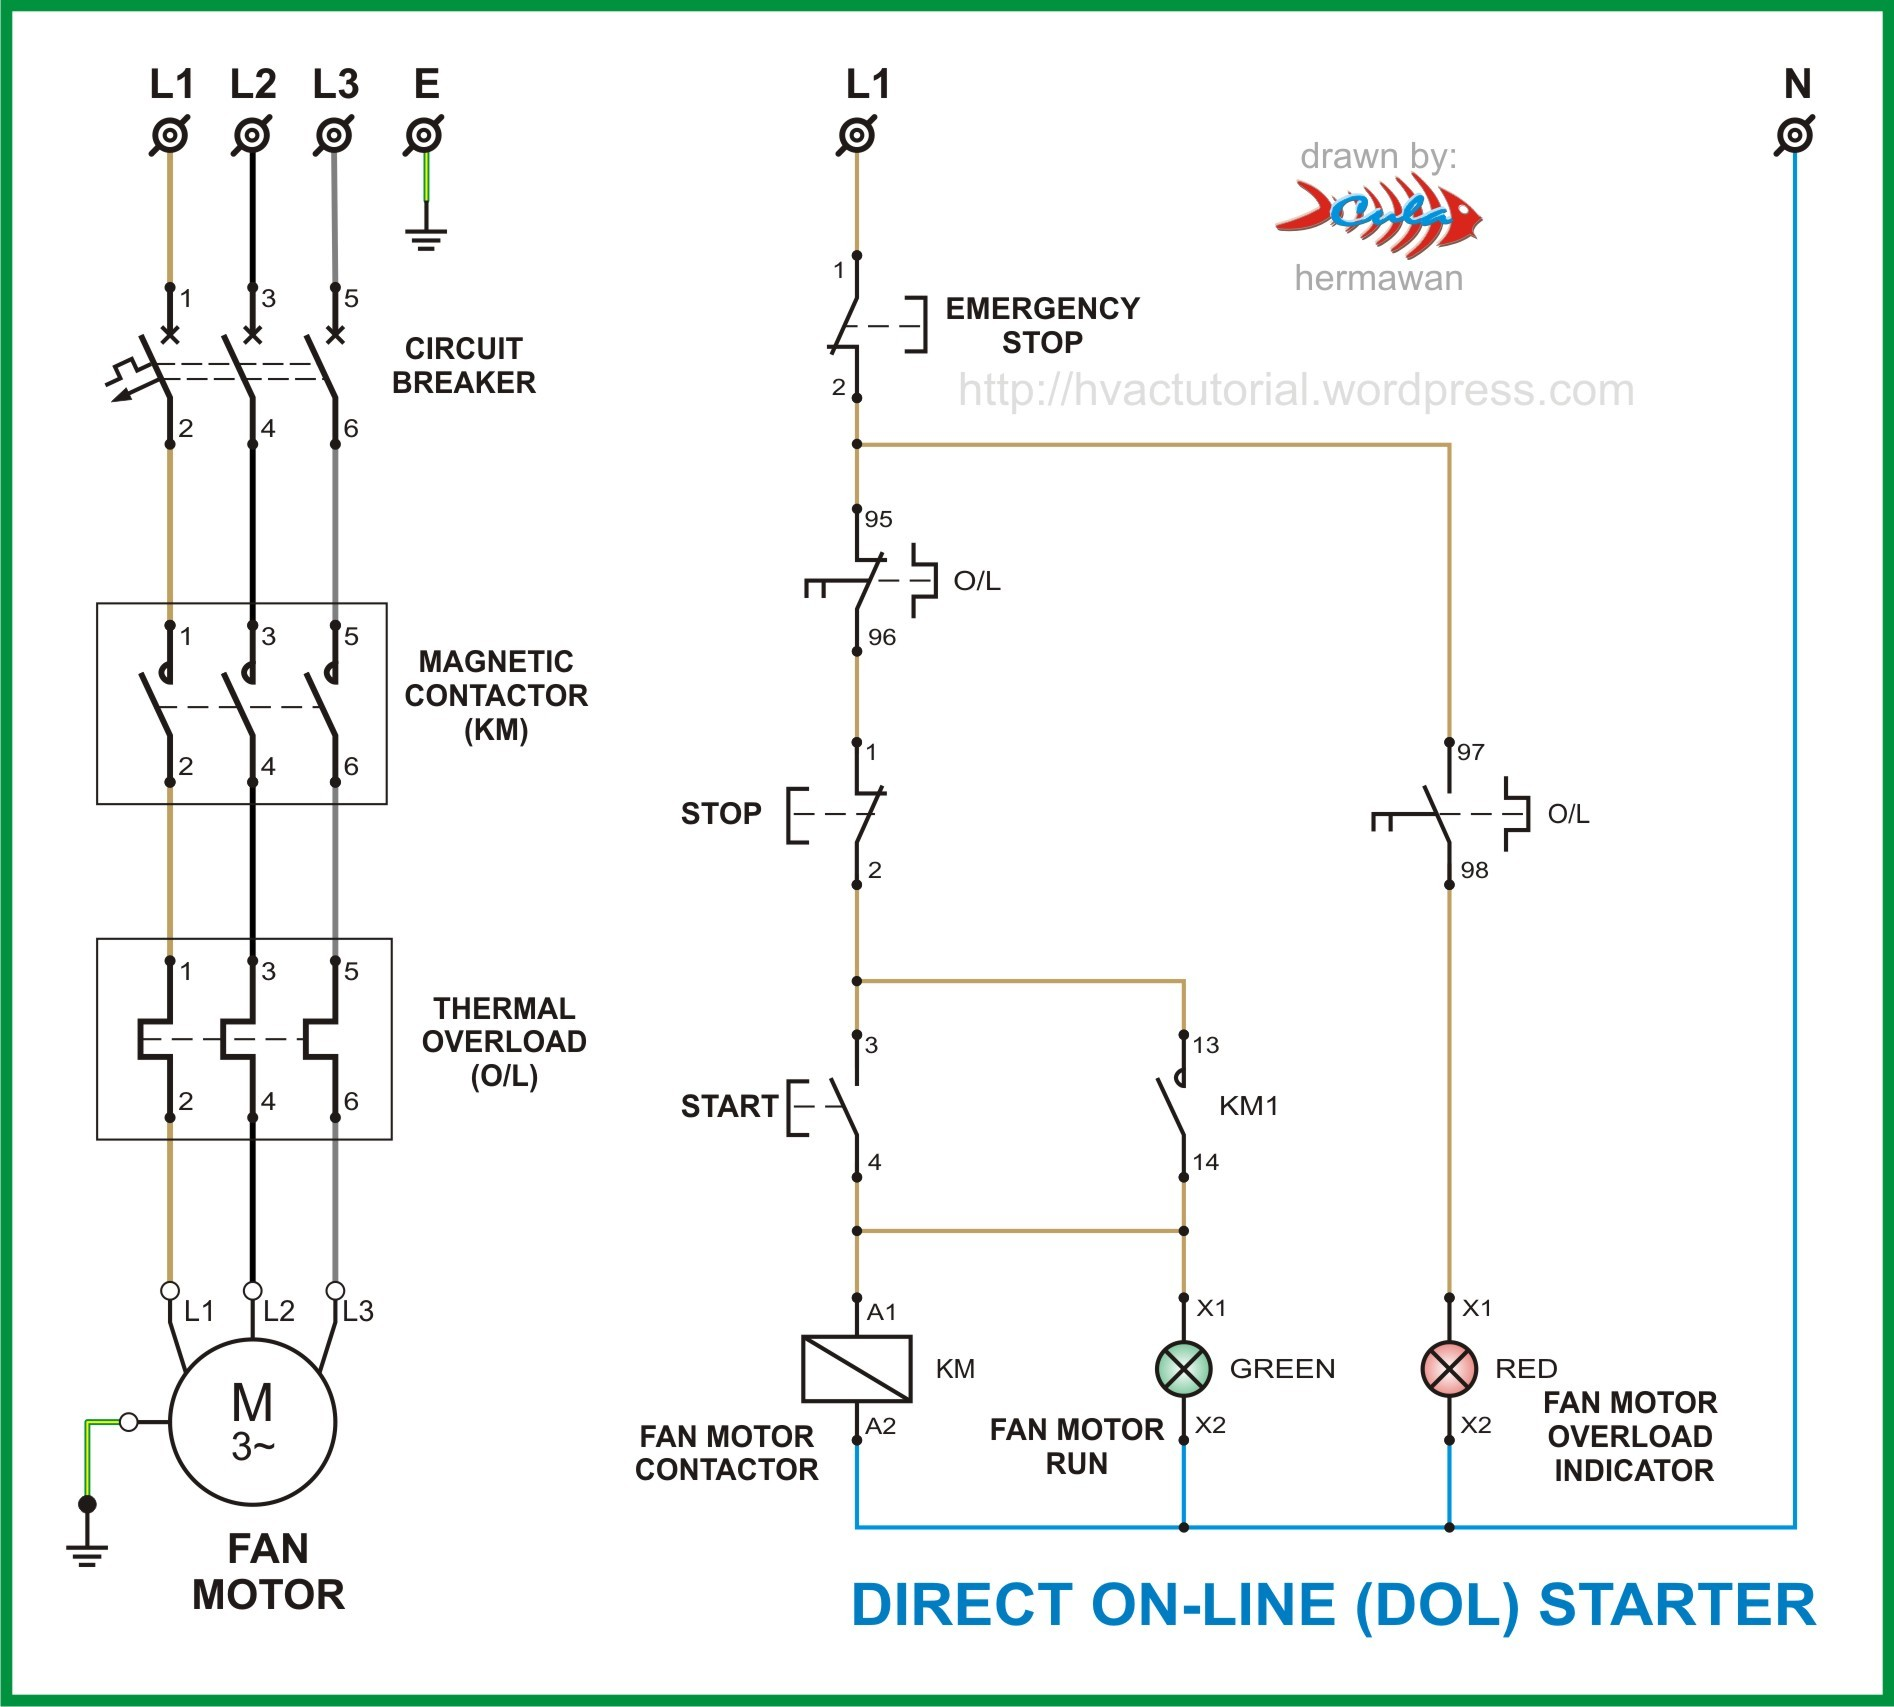 Epo Switch Wiring Diagram In Series Es Worksheet And To Light For Gfi Schematic E Stop Schematics Diagrams U2022 Rh Parntesis Co Square D Of A Box Single